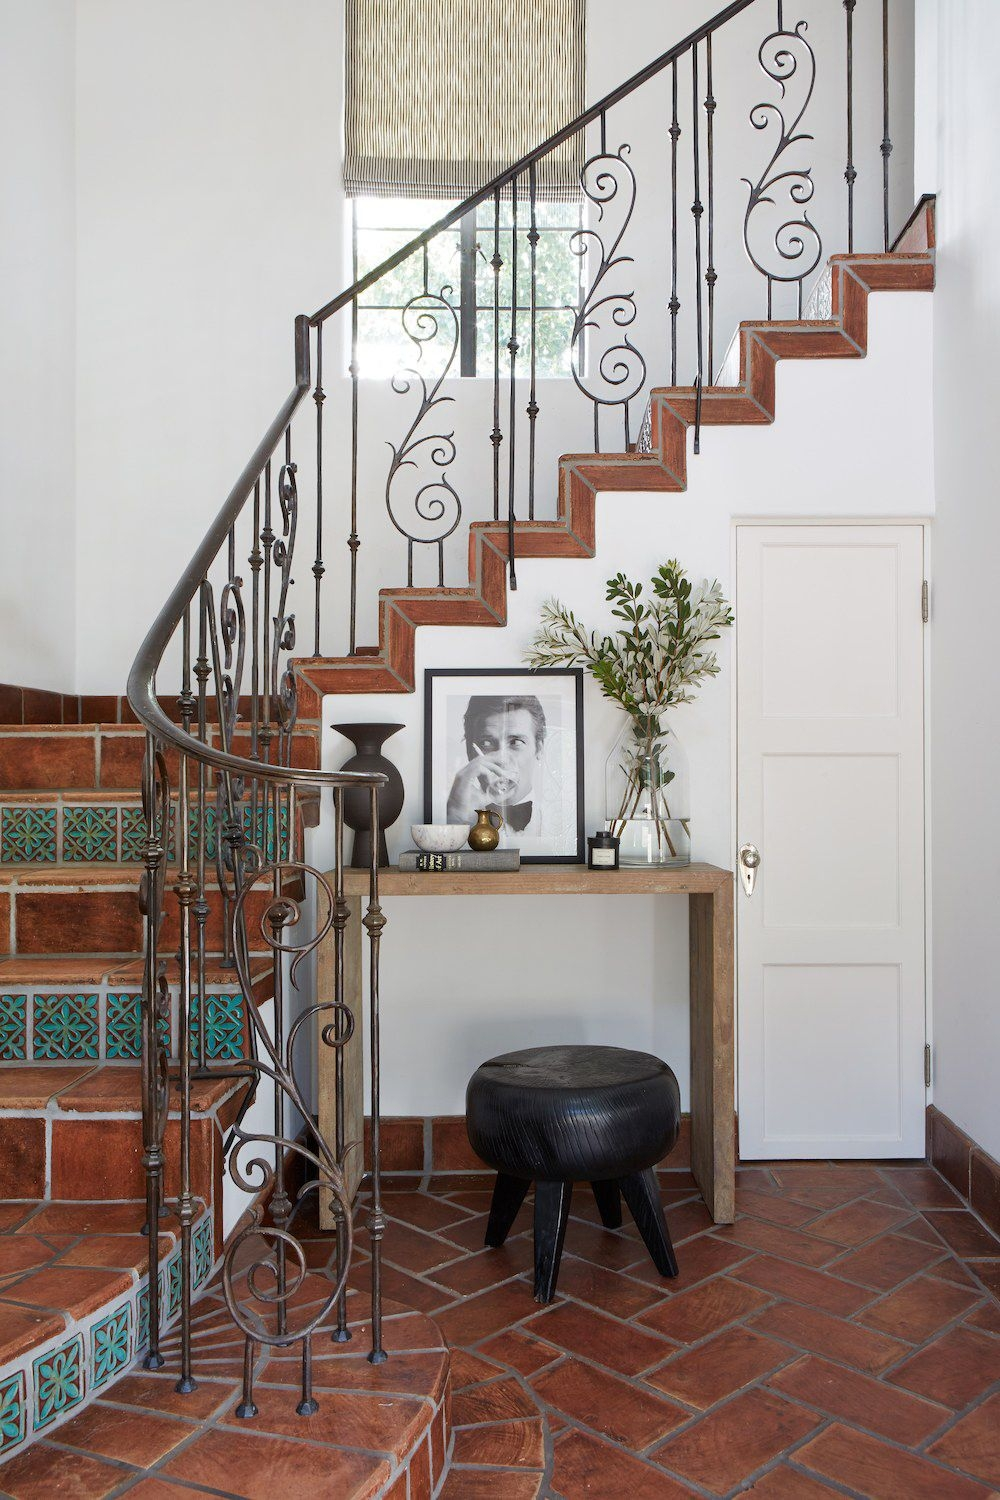 25 Unique Stair Designs Beautiful Stair Ideas For Your House   Outdoor Steps Design For House   Metal   Farm House Wide Front Porch   Handrail   Outdoor Walkway   Fancy